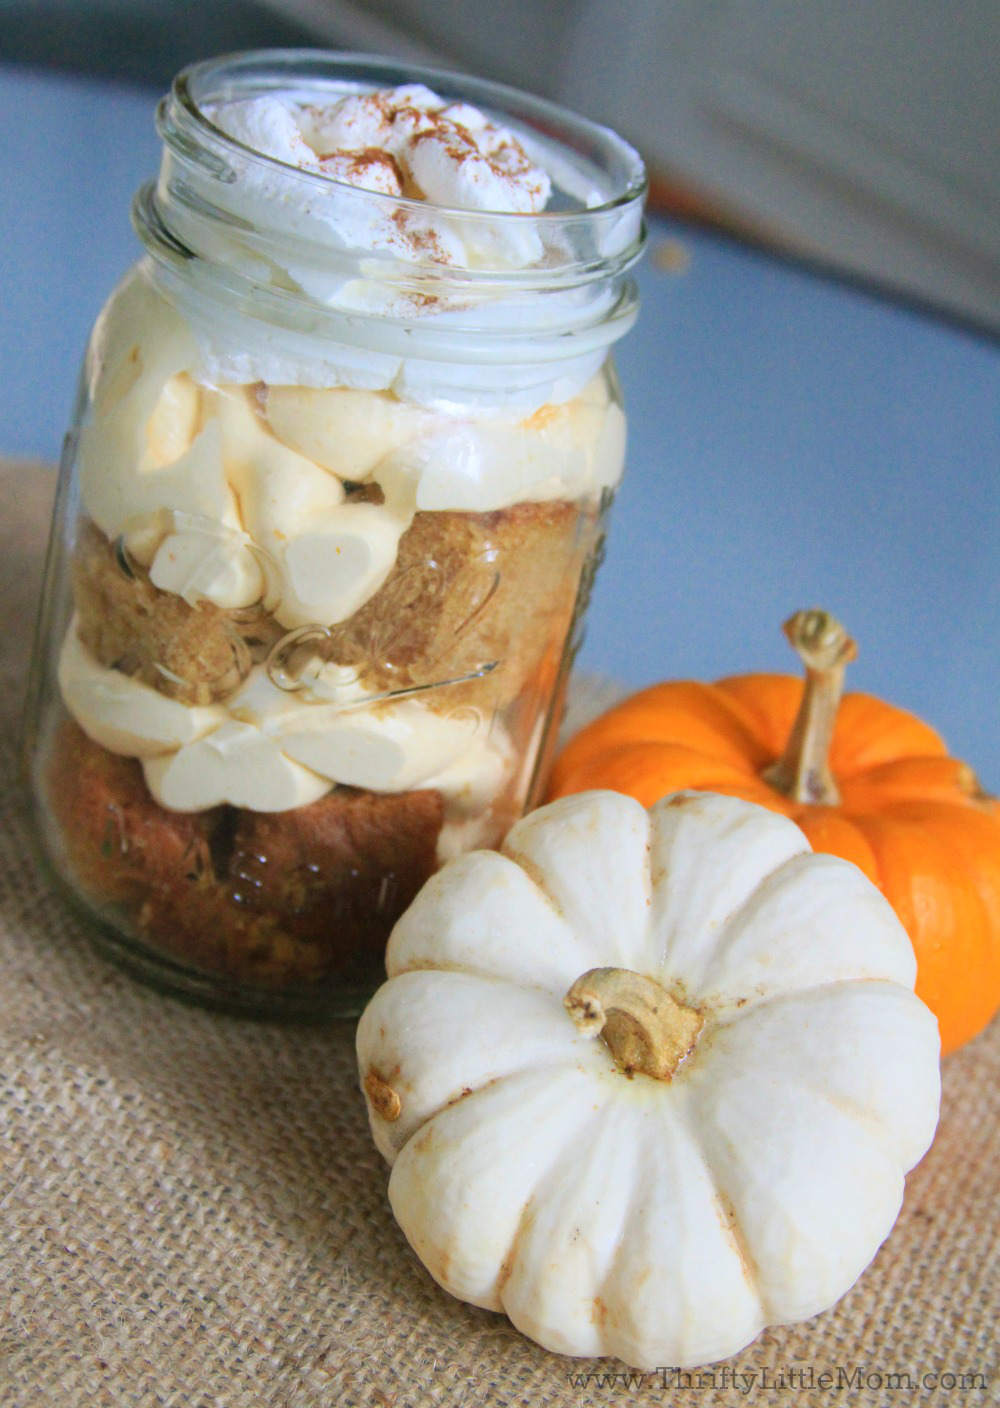 8 Pumpkin Recipes to Spice Up Your Fall! These include healthy recipes, easy desserts, pumpkin spice coffee, canned pumpkin recipes and even one's with cream cheese! You're sure to find a few you love!